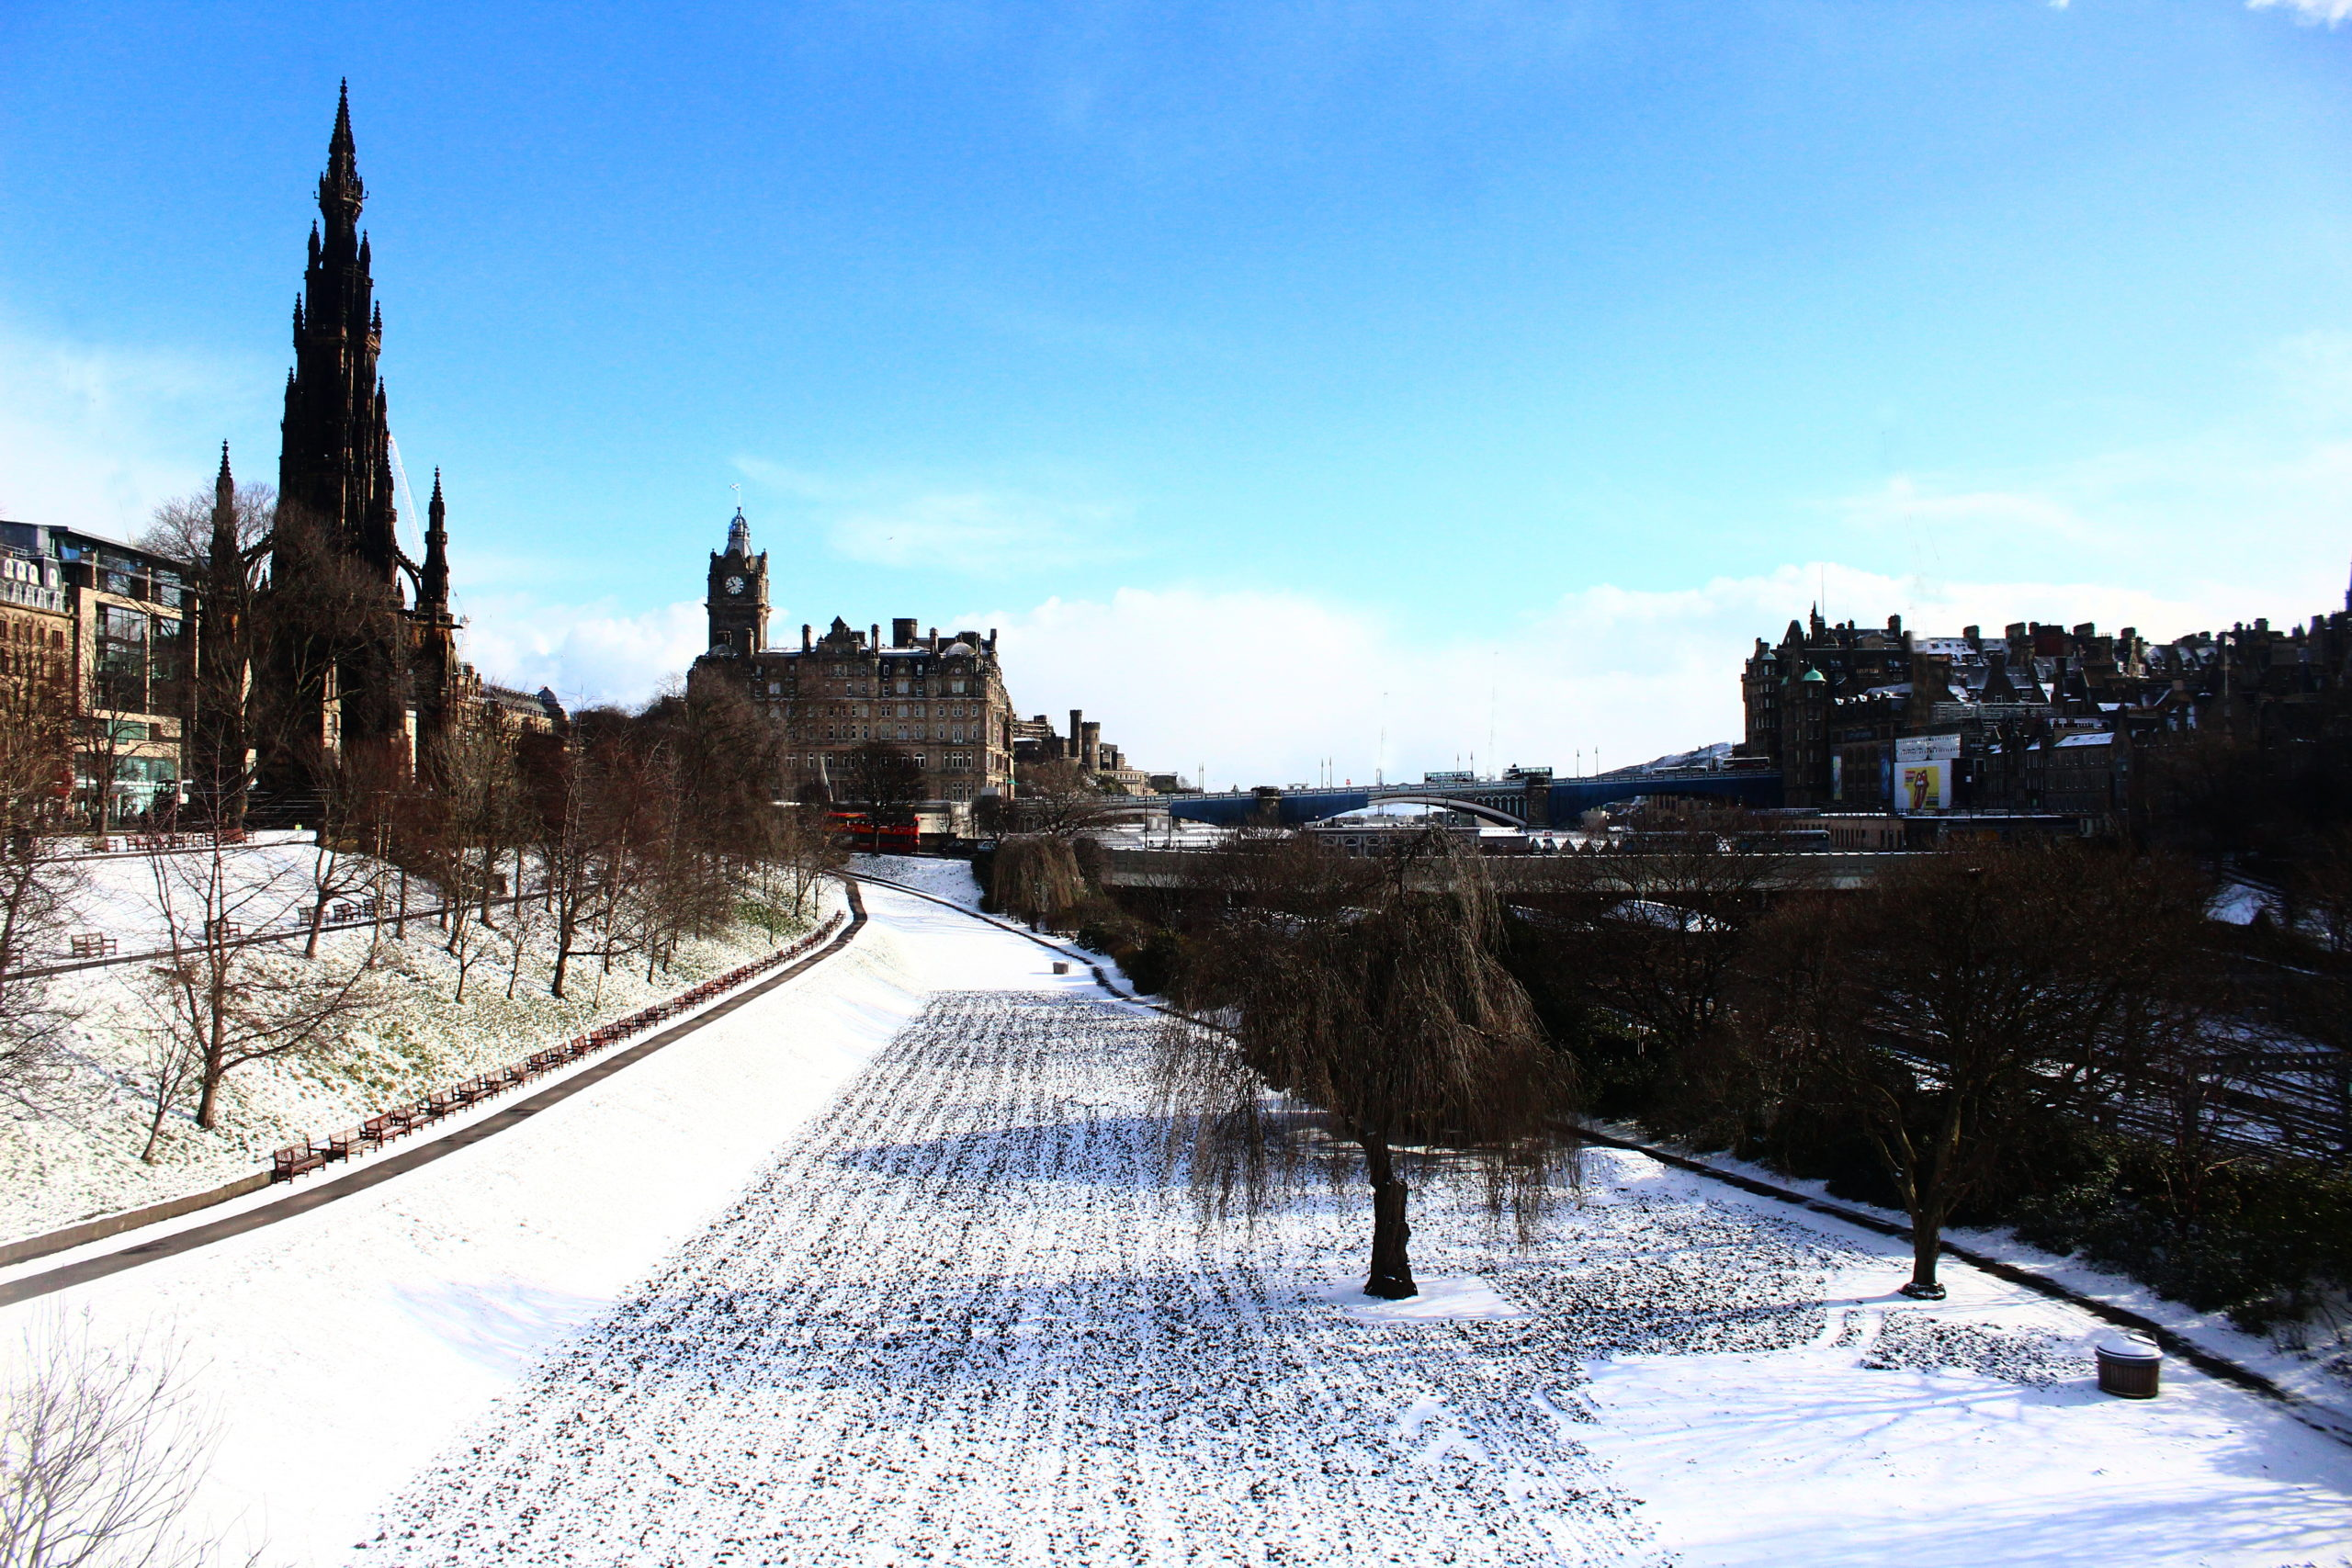 Things to do in Edinburgh in winter